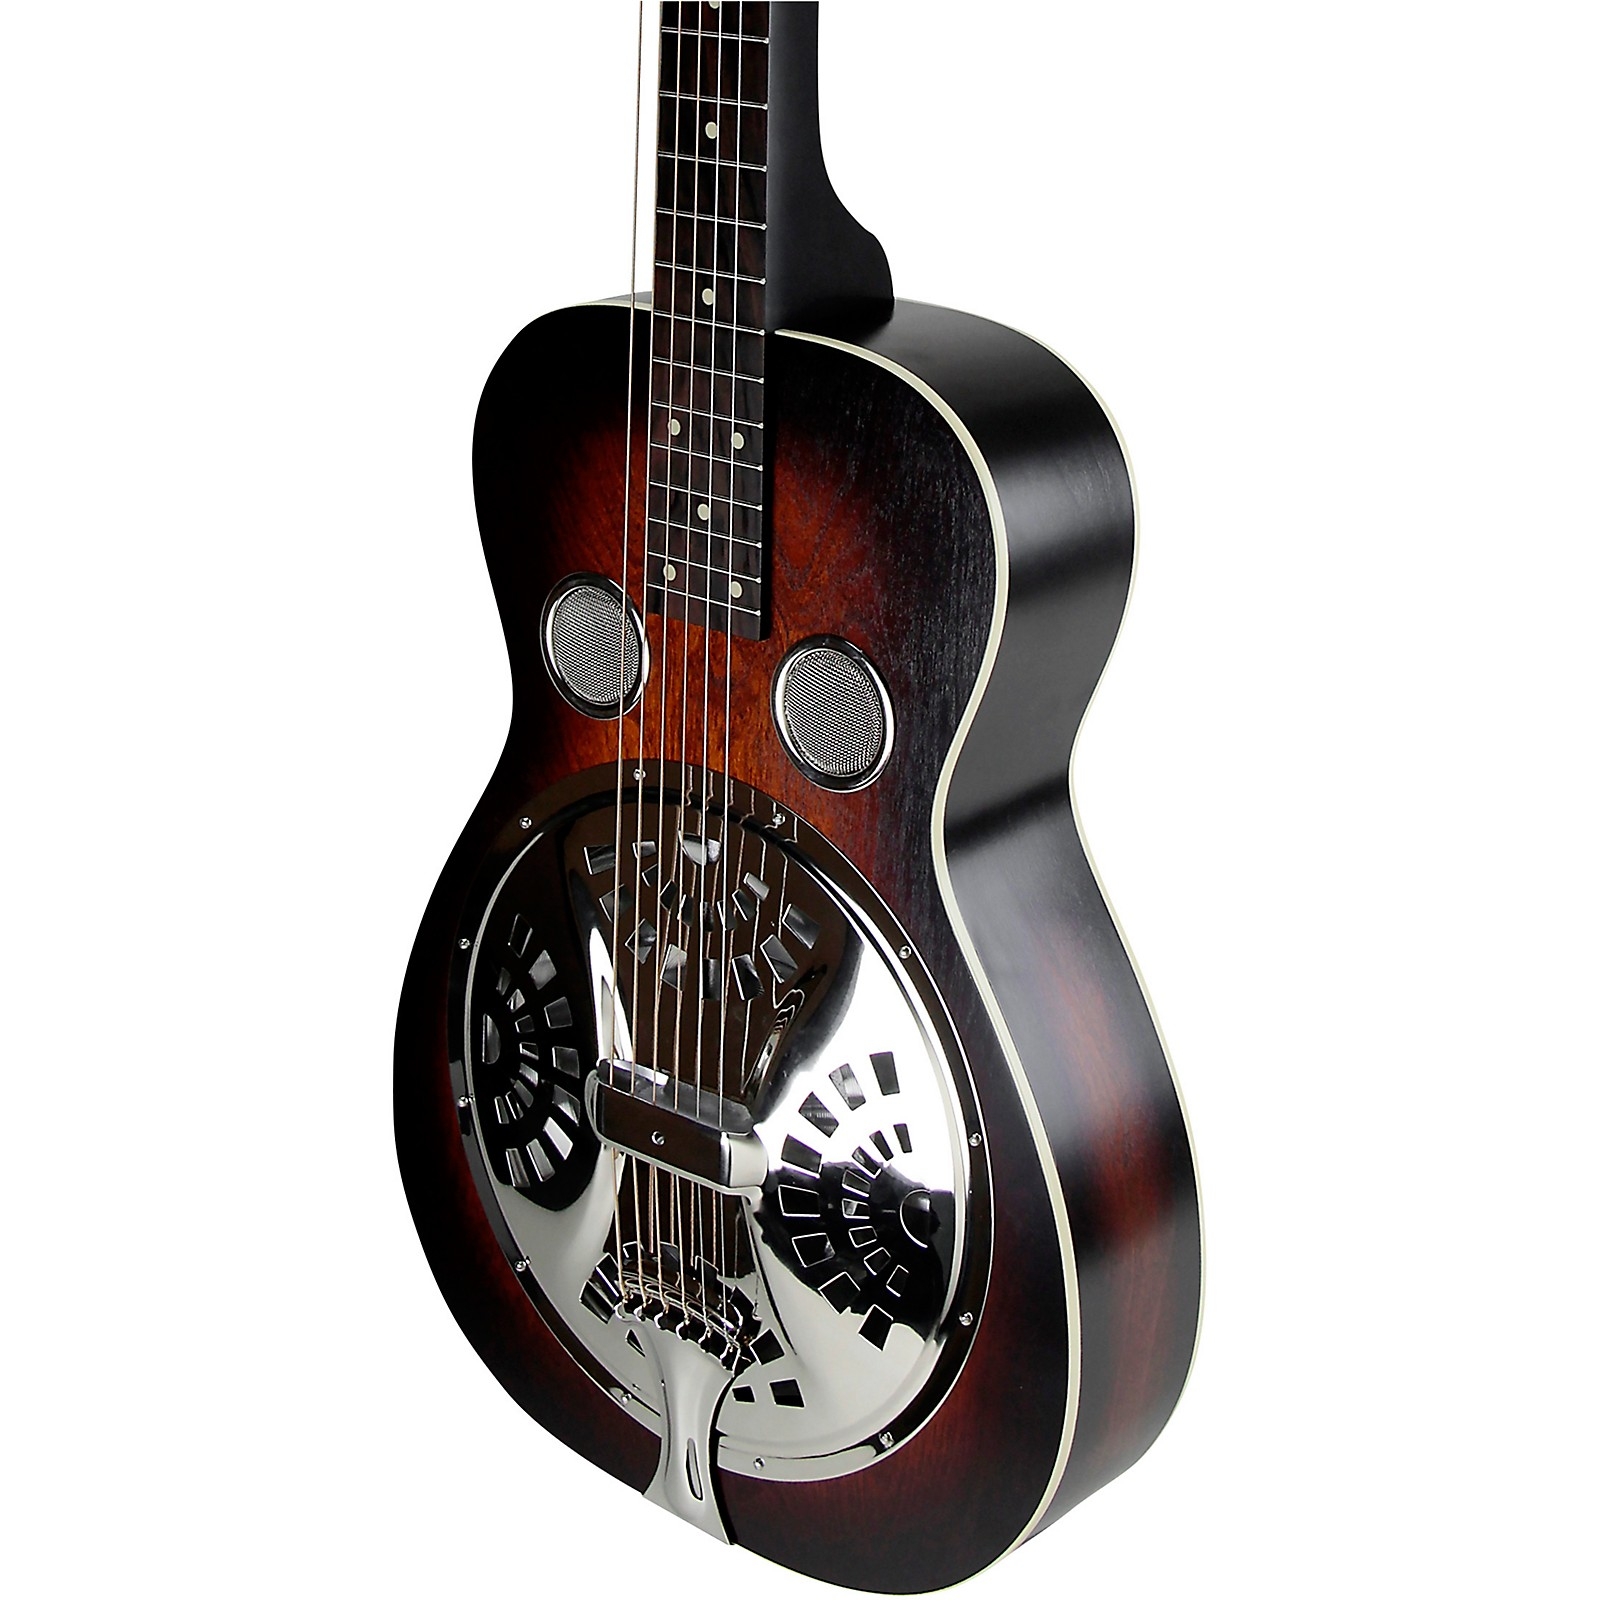 Beard Guitars Deco Phonic Model 37 Squareneck Acoustic-Electric Resonator Guitar